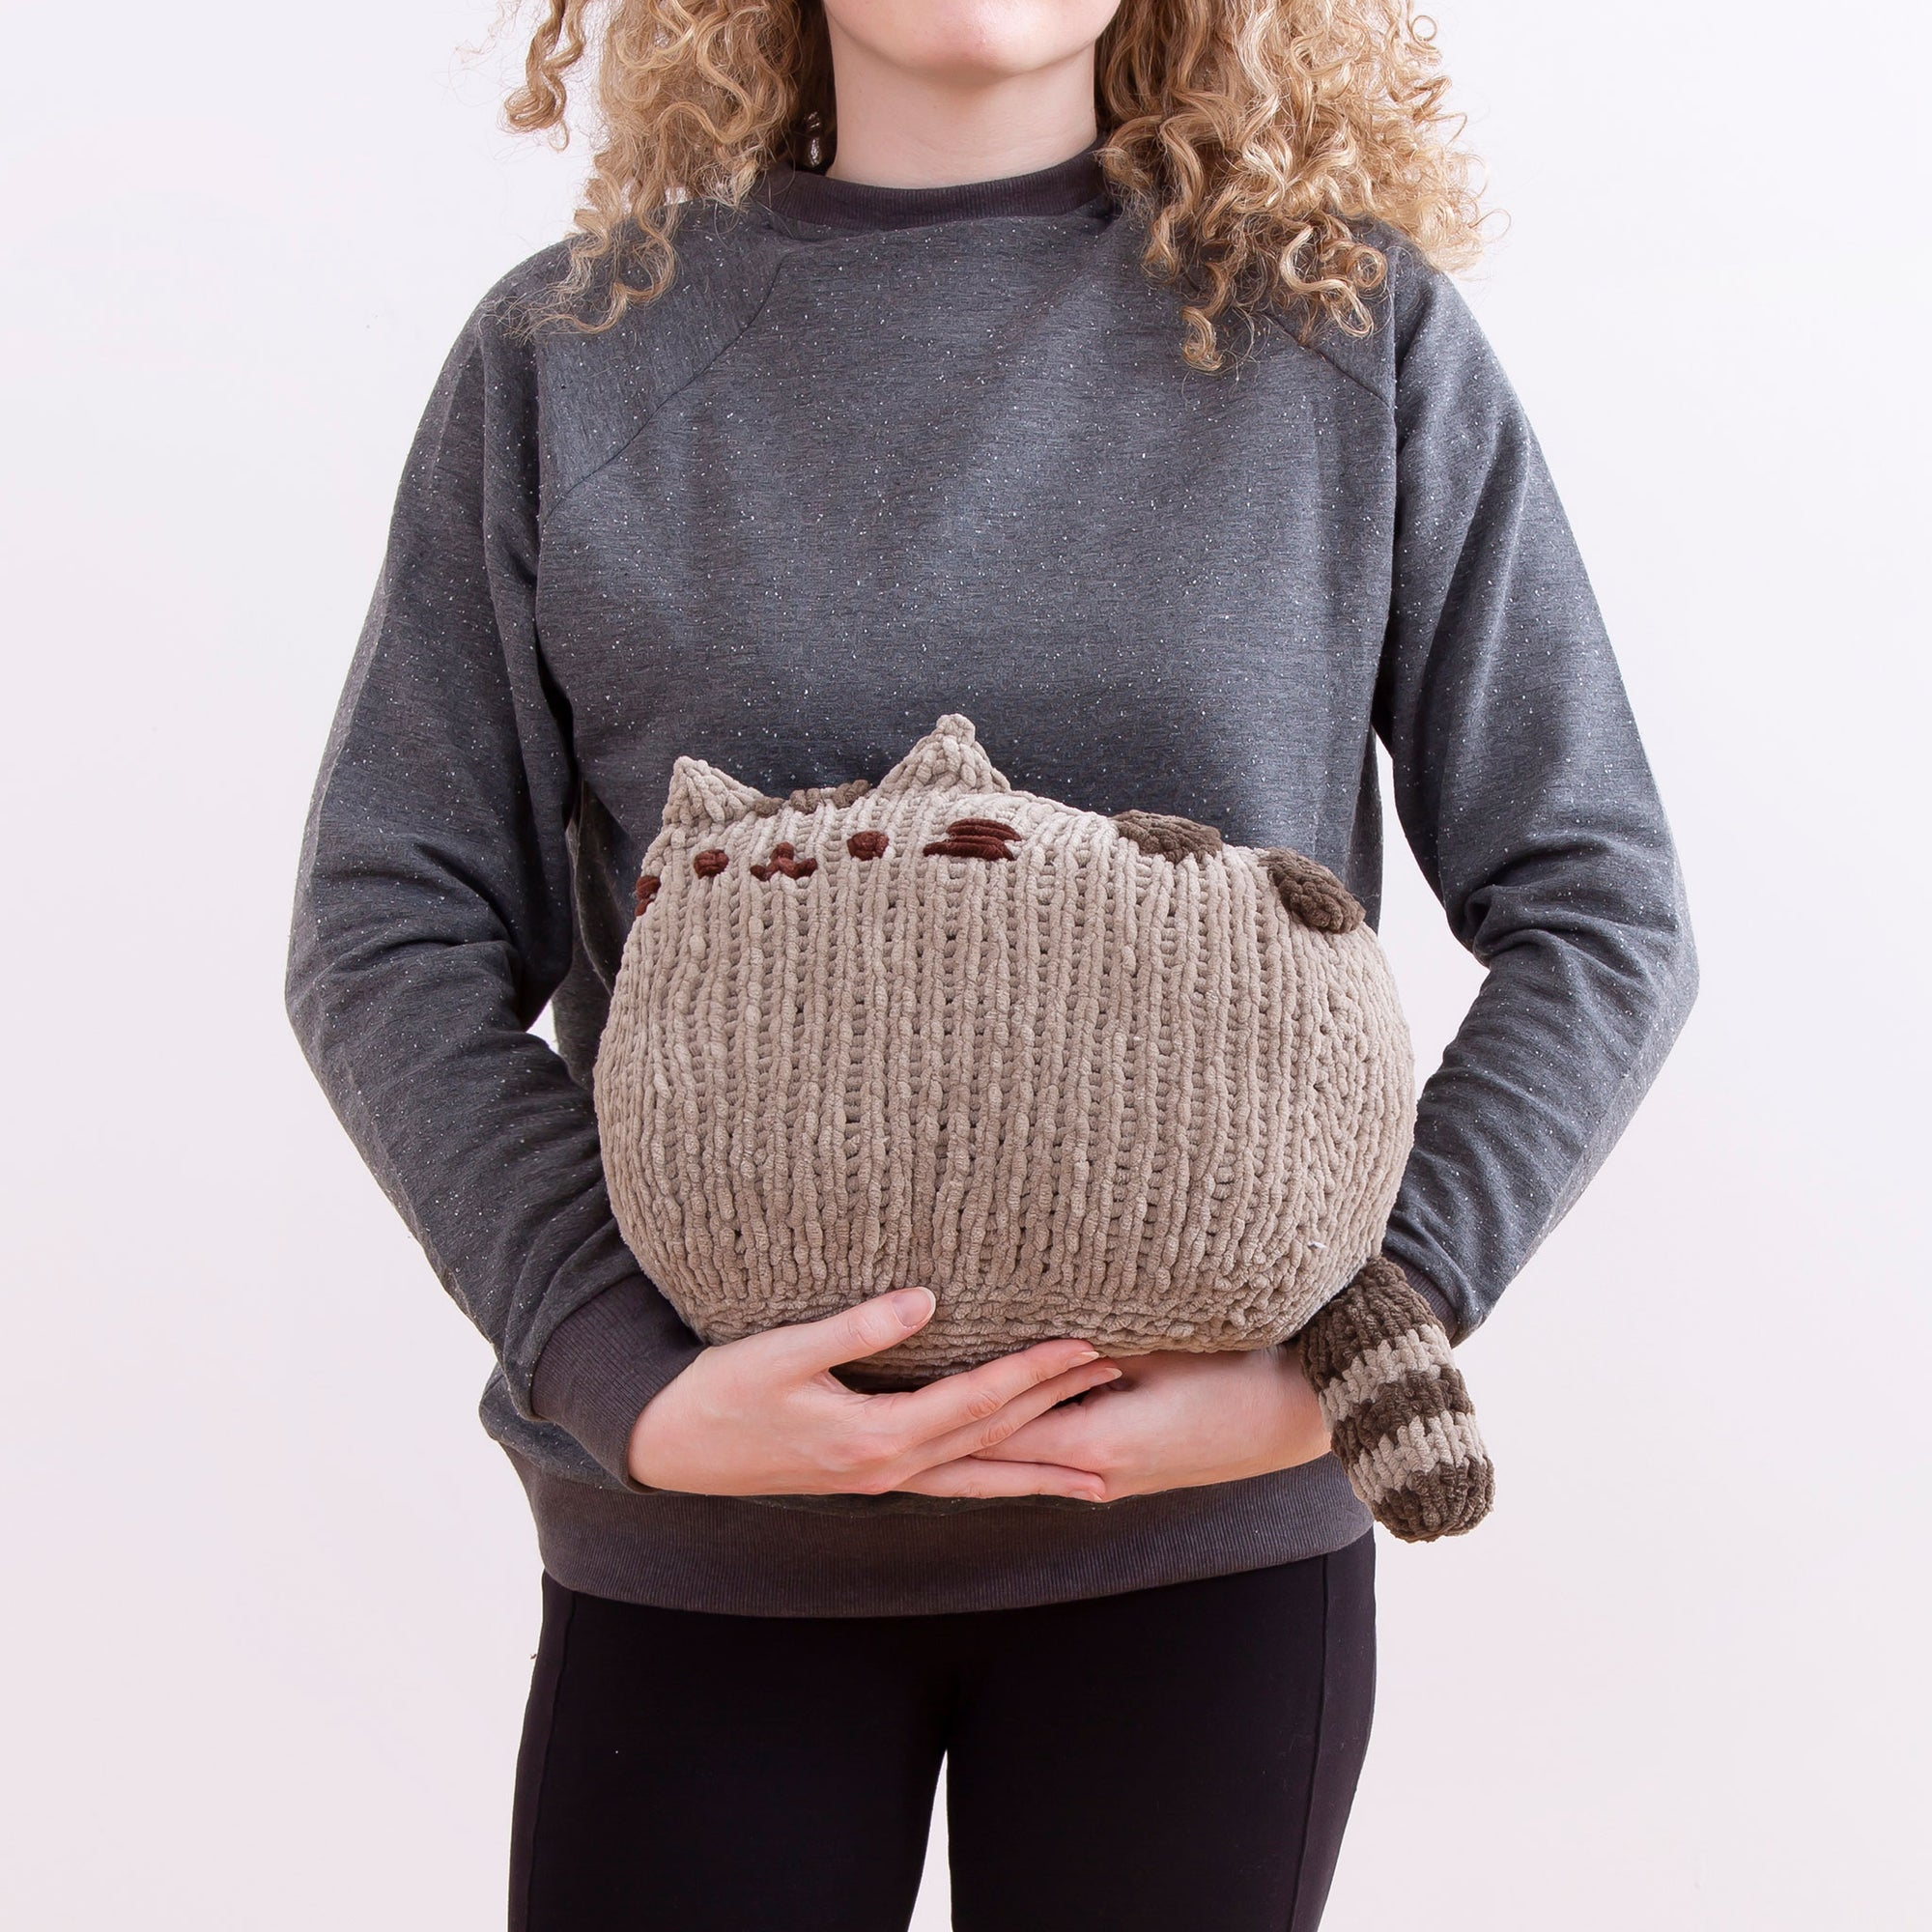 Pusheen: Sitting Pusheen Knitting Kit